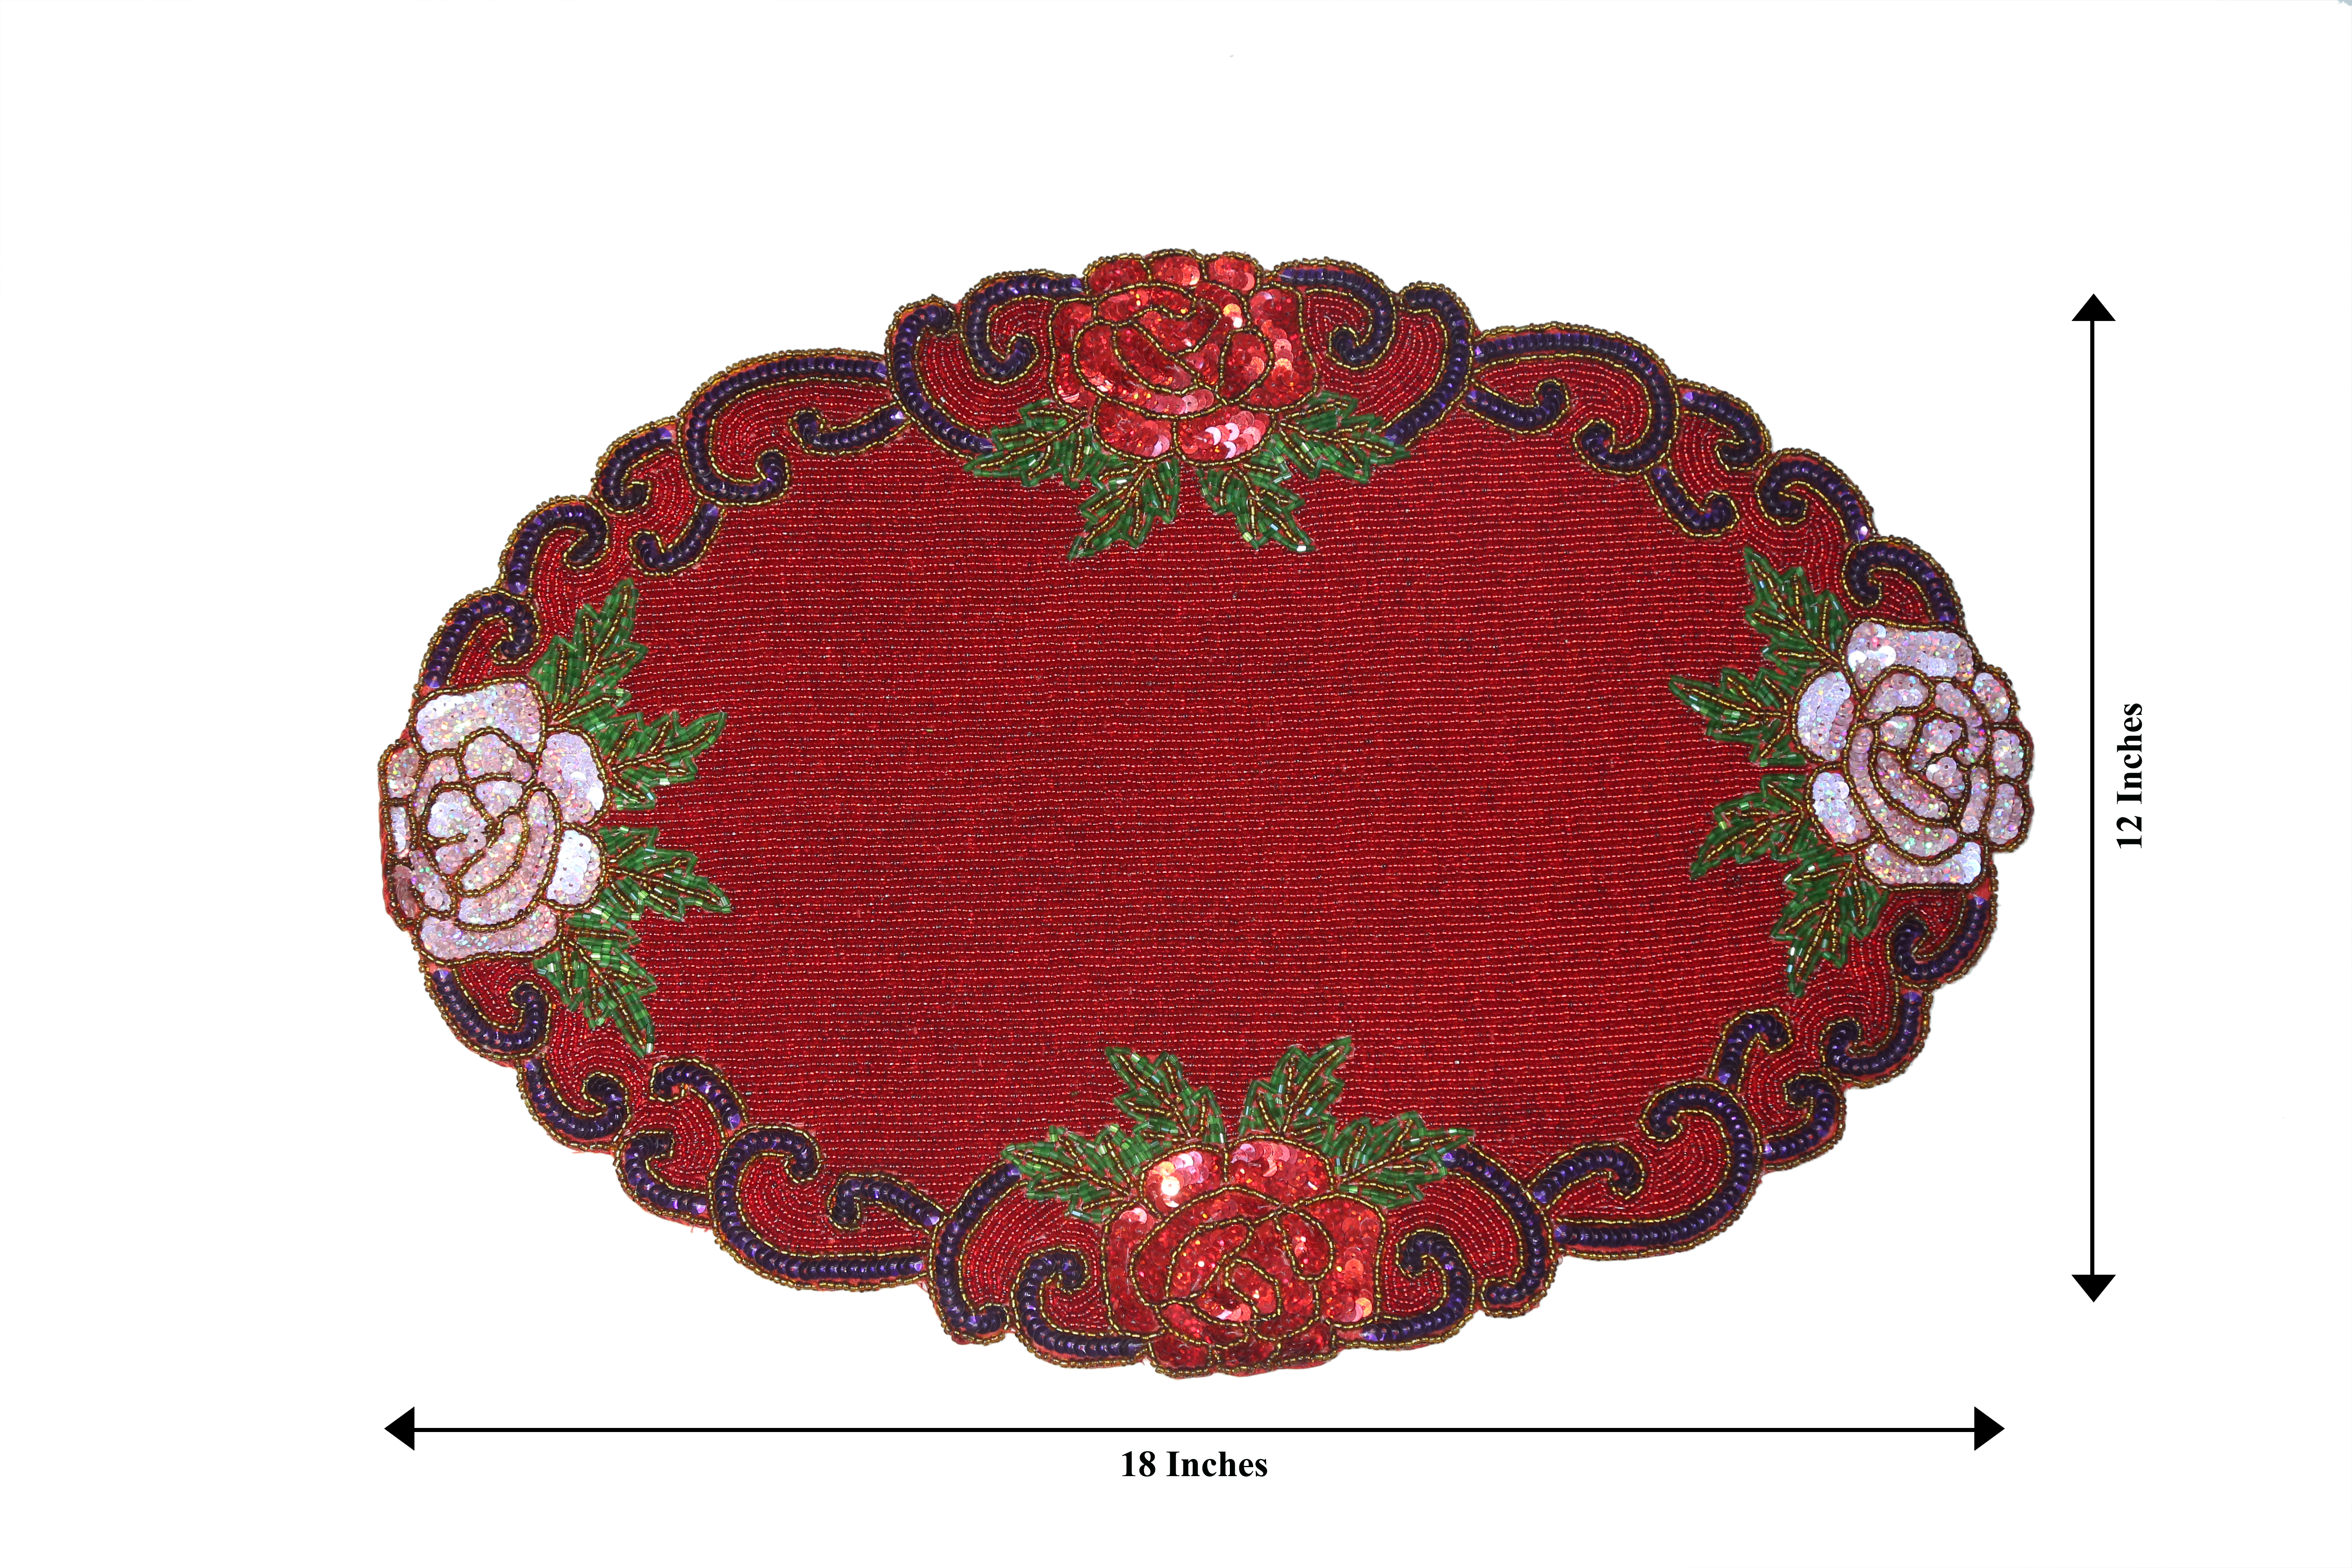 Florance Table Mats, Kitchen & Dining Black Placemats (Red, 12 x 18)